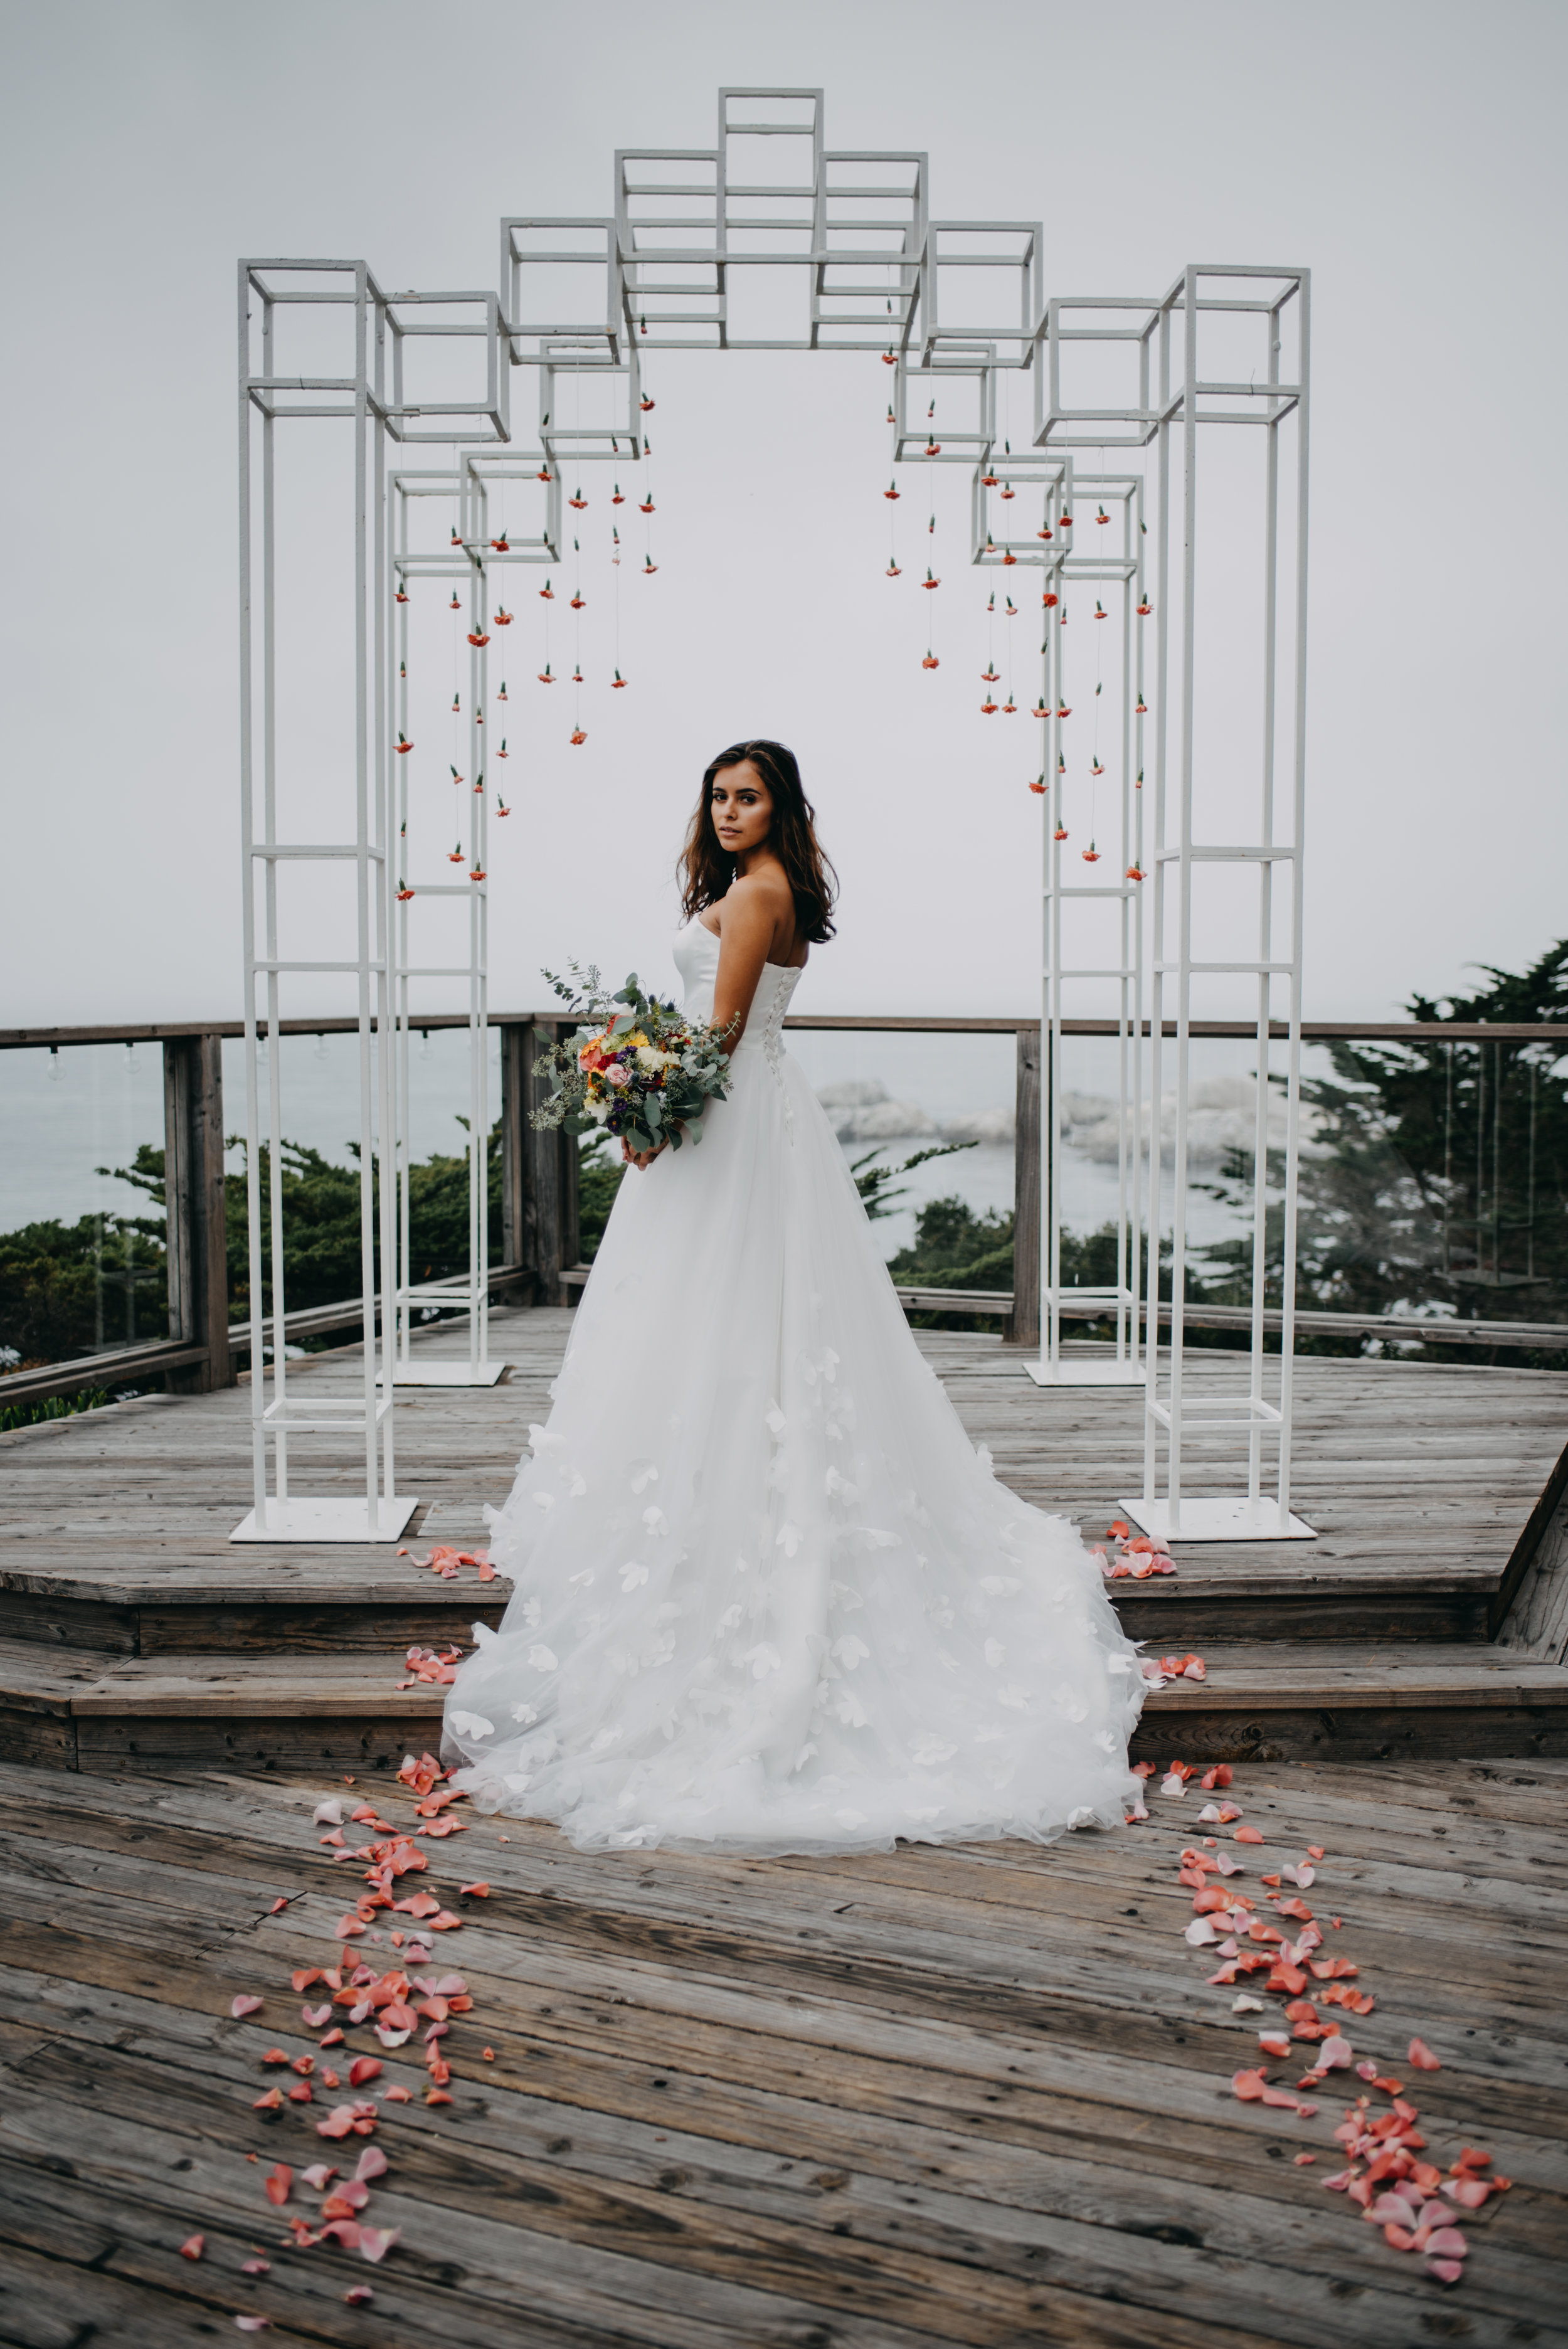 """Dennese's measurements are: Height: 5'3 / Bust 32"""" / Waist 26"""" / Hip 32"""" 